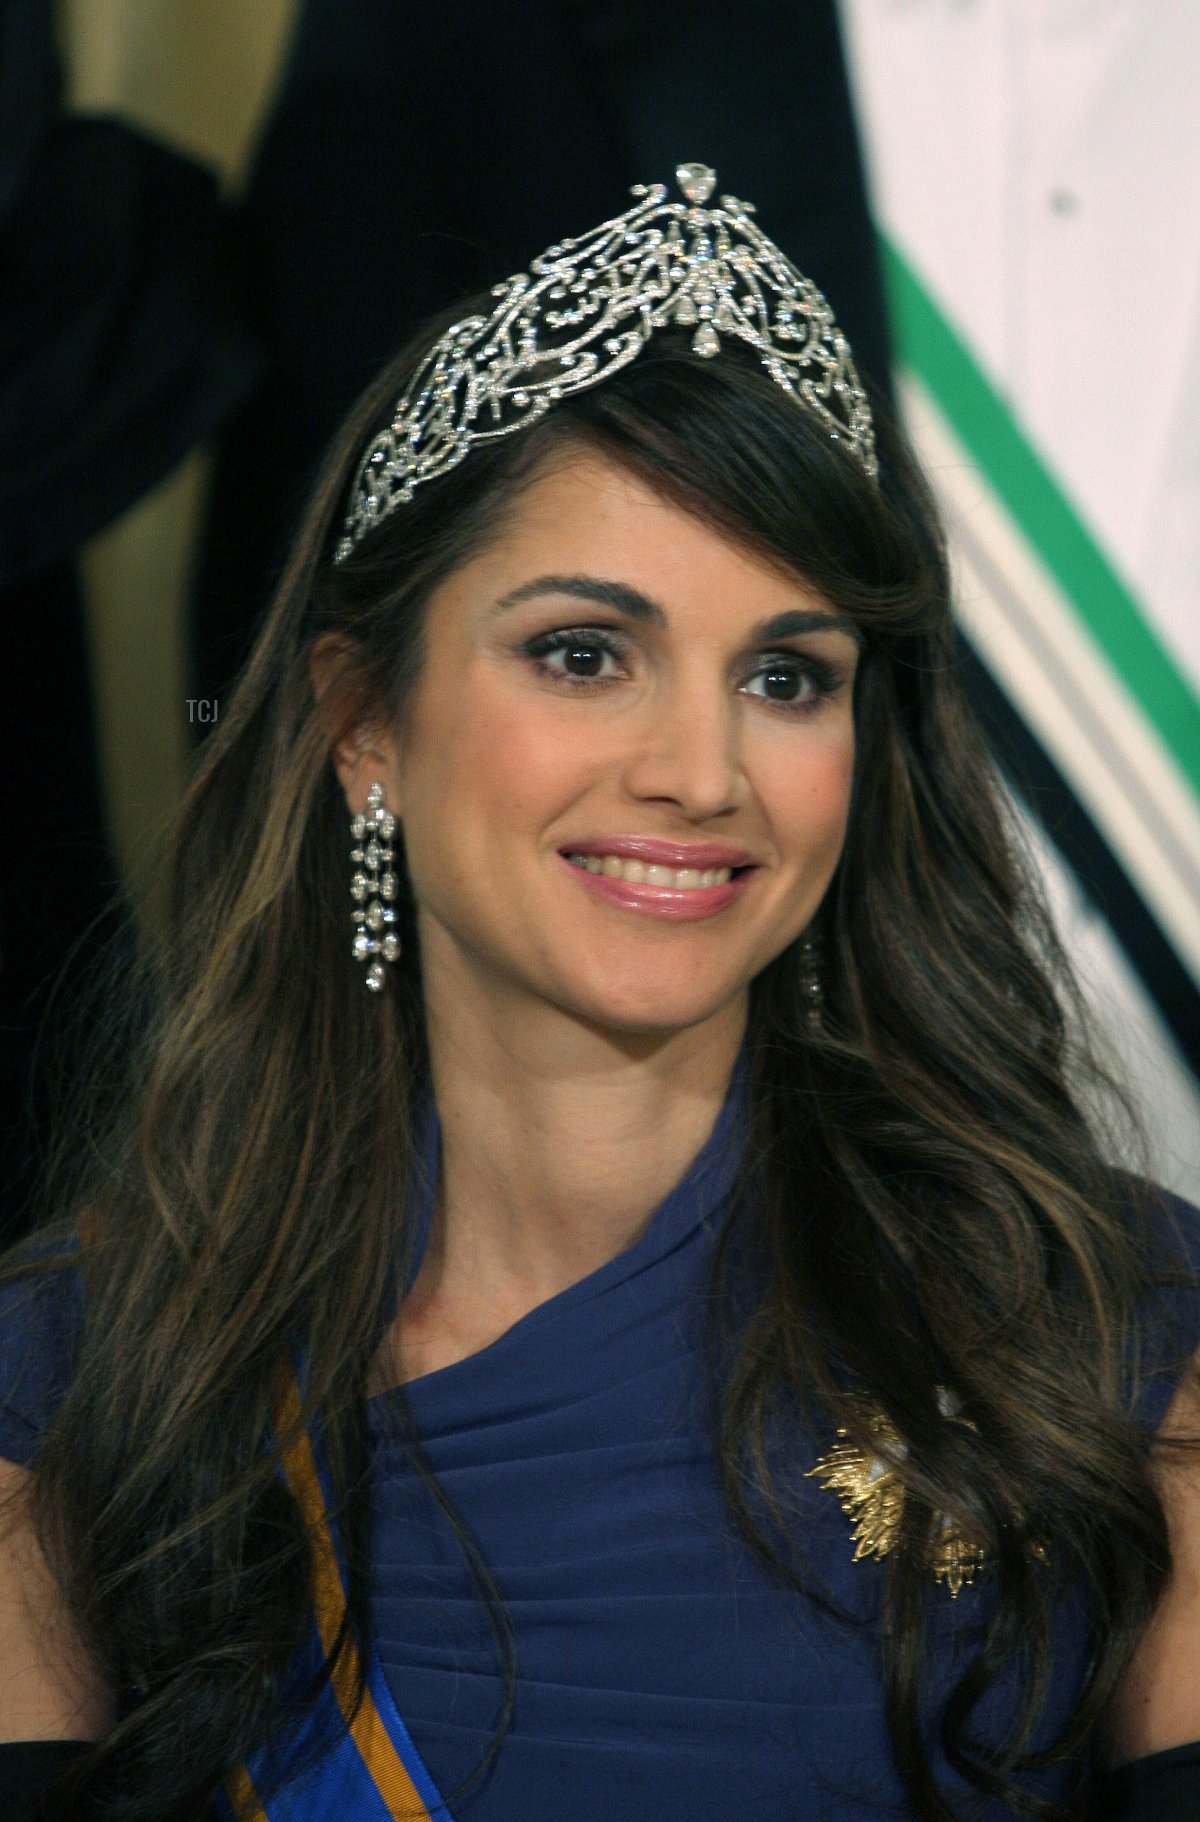 Queen Rania of Jordan pictured on the occasion of the state visit by King Abdullah II and Queen Rania of Jordania to The Hague, the Netherlands, Monday, 30 October 2006